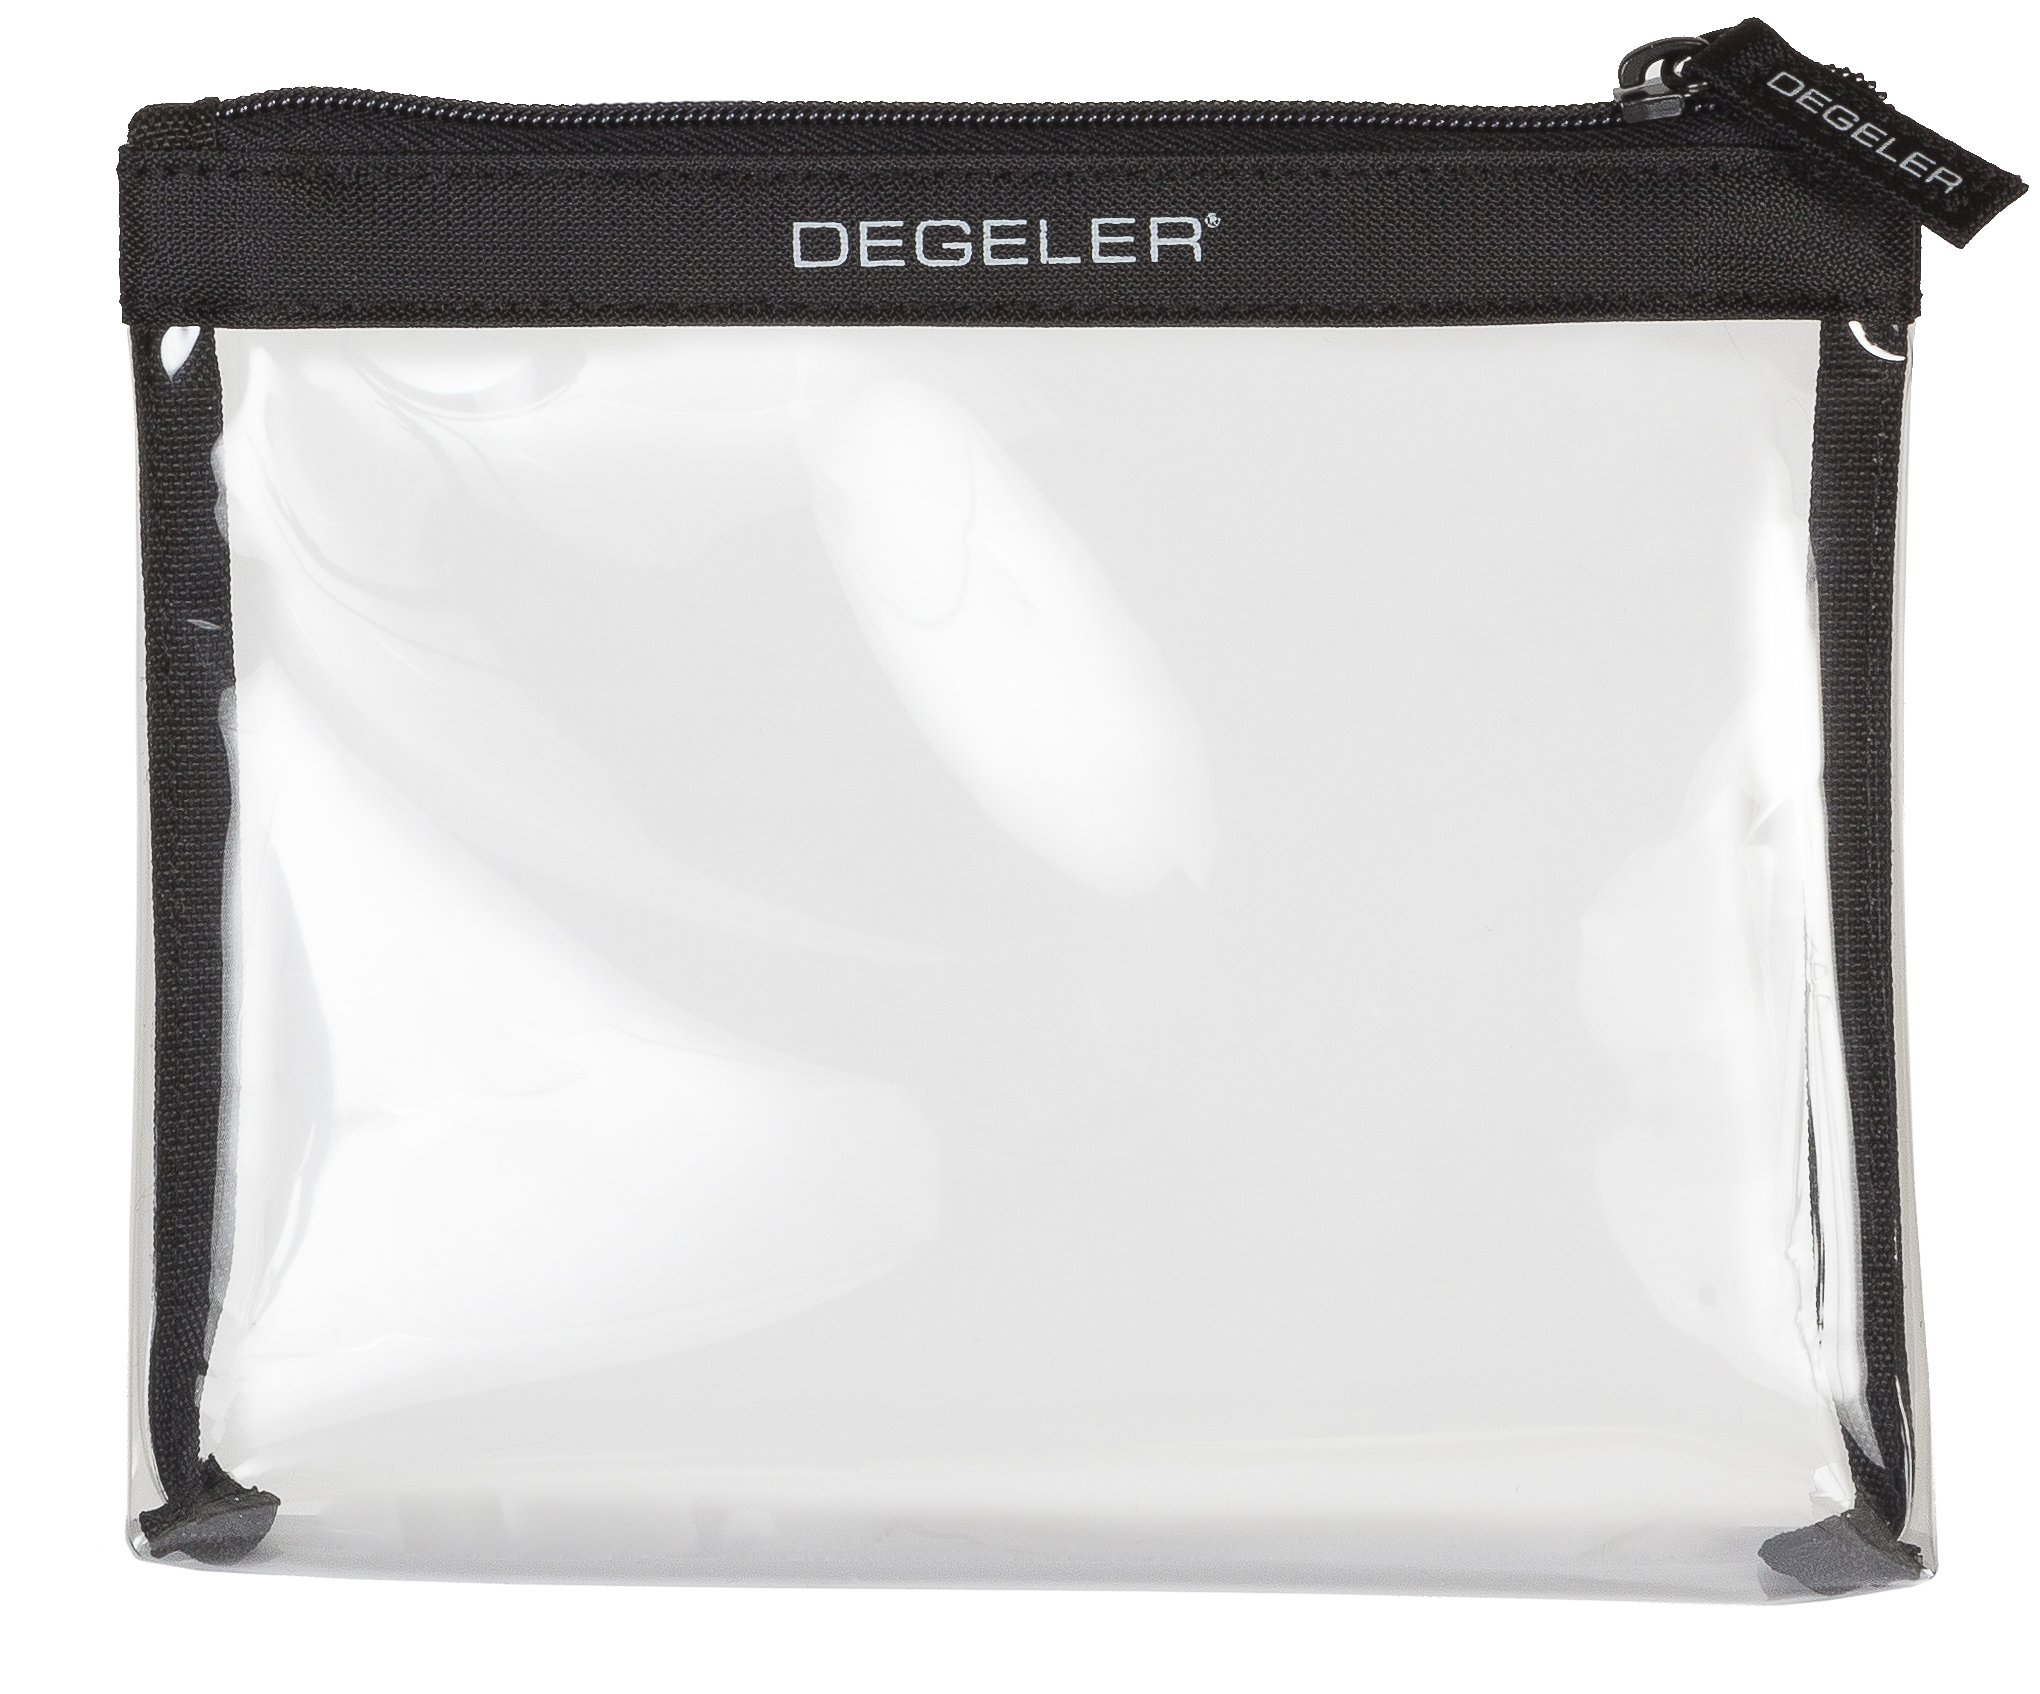 DEGELER Carry-on Clear Bag - Zip-Sealable Toiletry Bag - Ideal for carrying liquids, cosmetics or make up in hand luggage over flights and short trips - TSA approved…